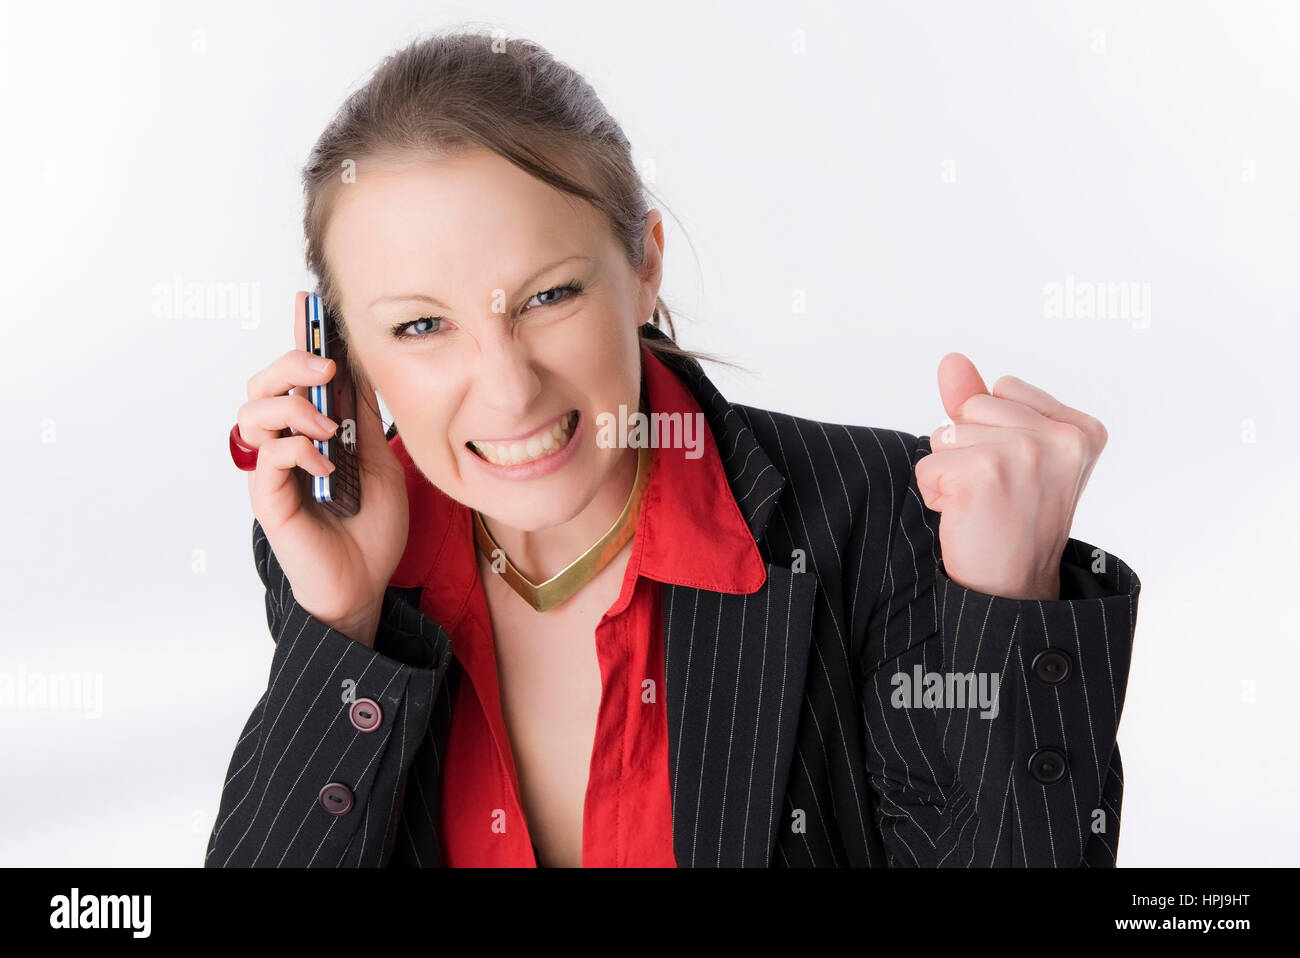 Model released , Geschaeftsfrau mit Handy - business woman with mobile phone Stock Photo